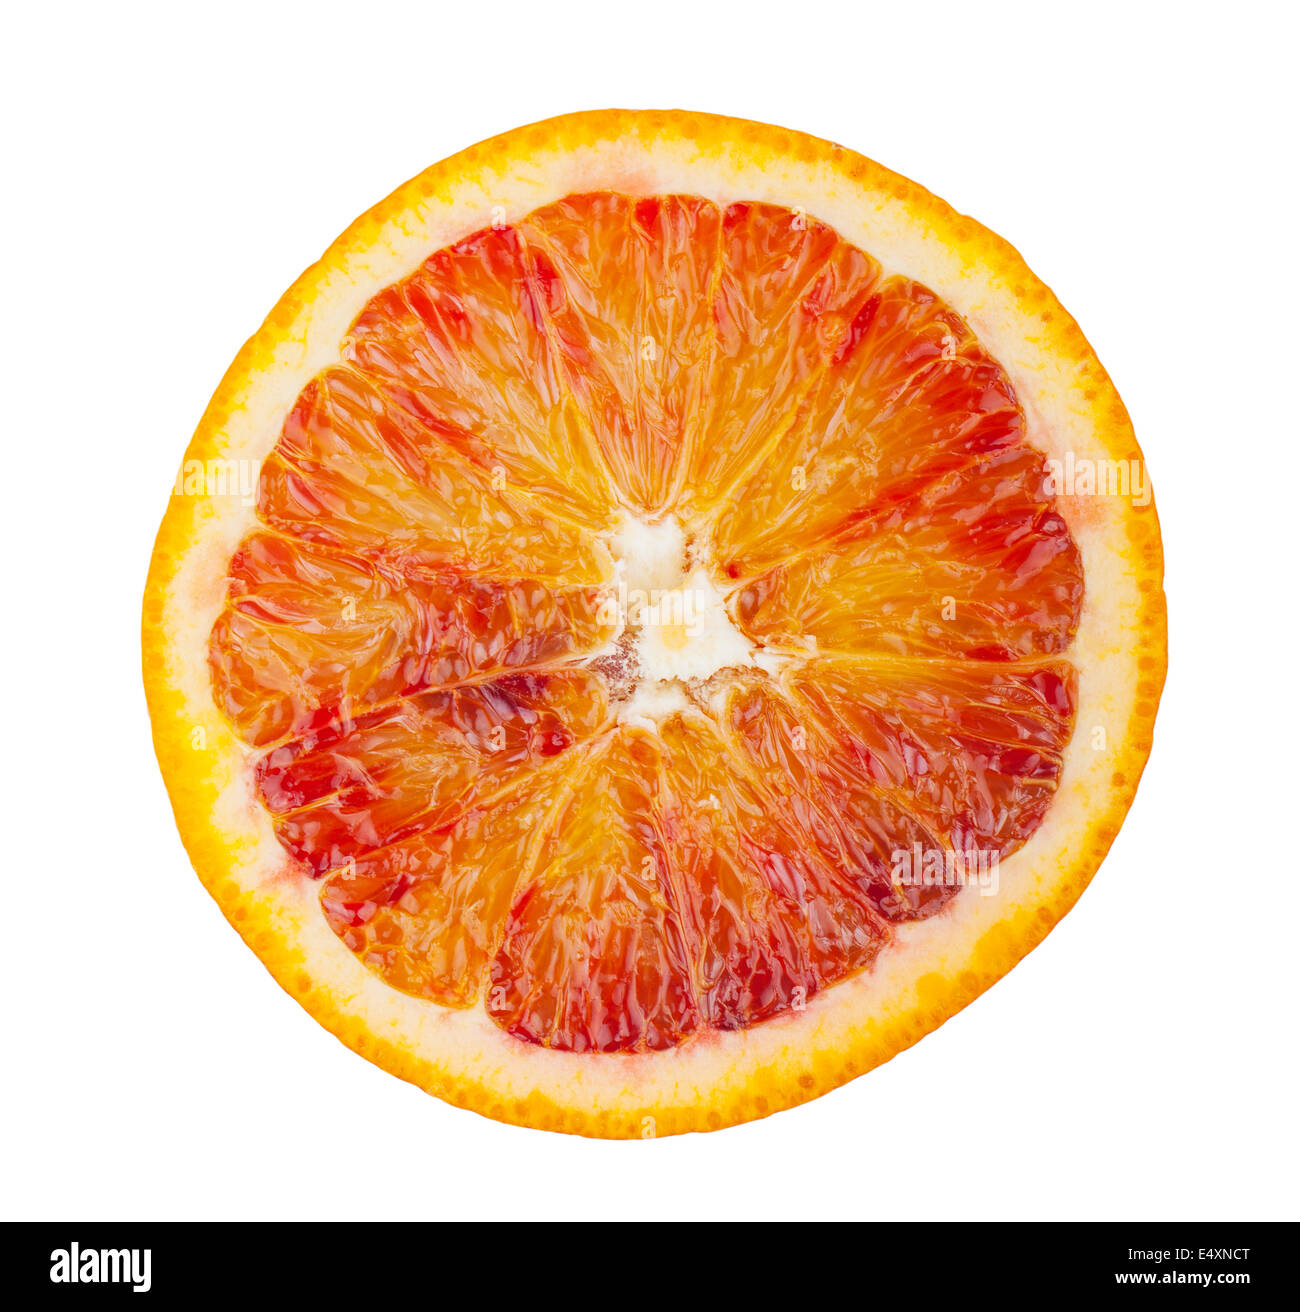 Slice of blood red orange fruit - Stock Image